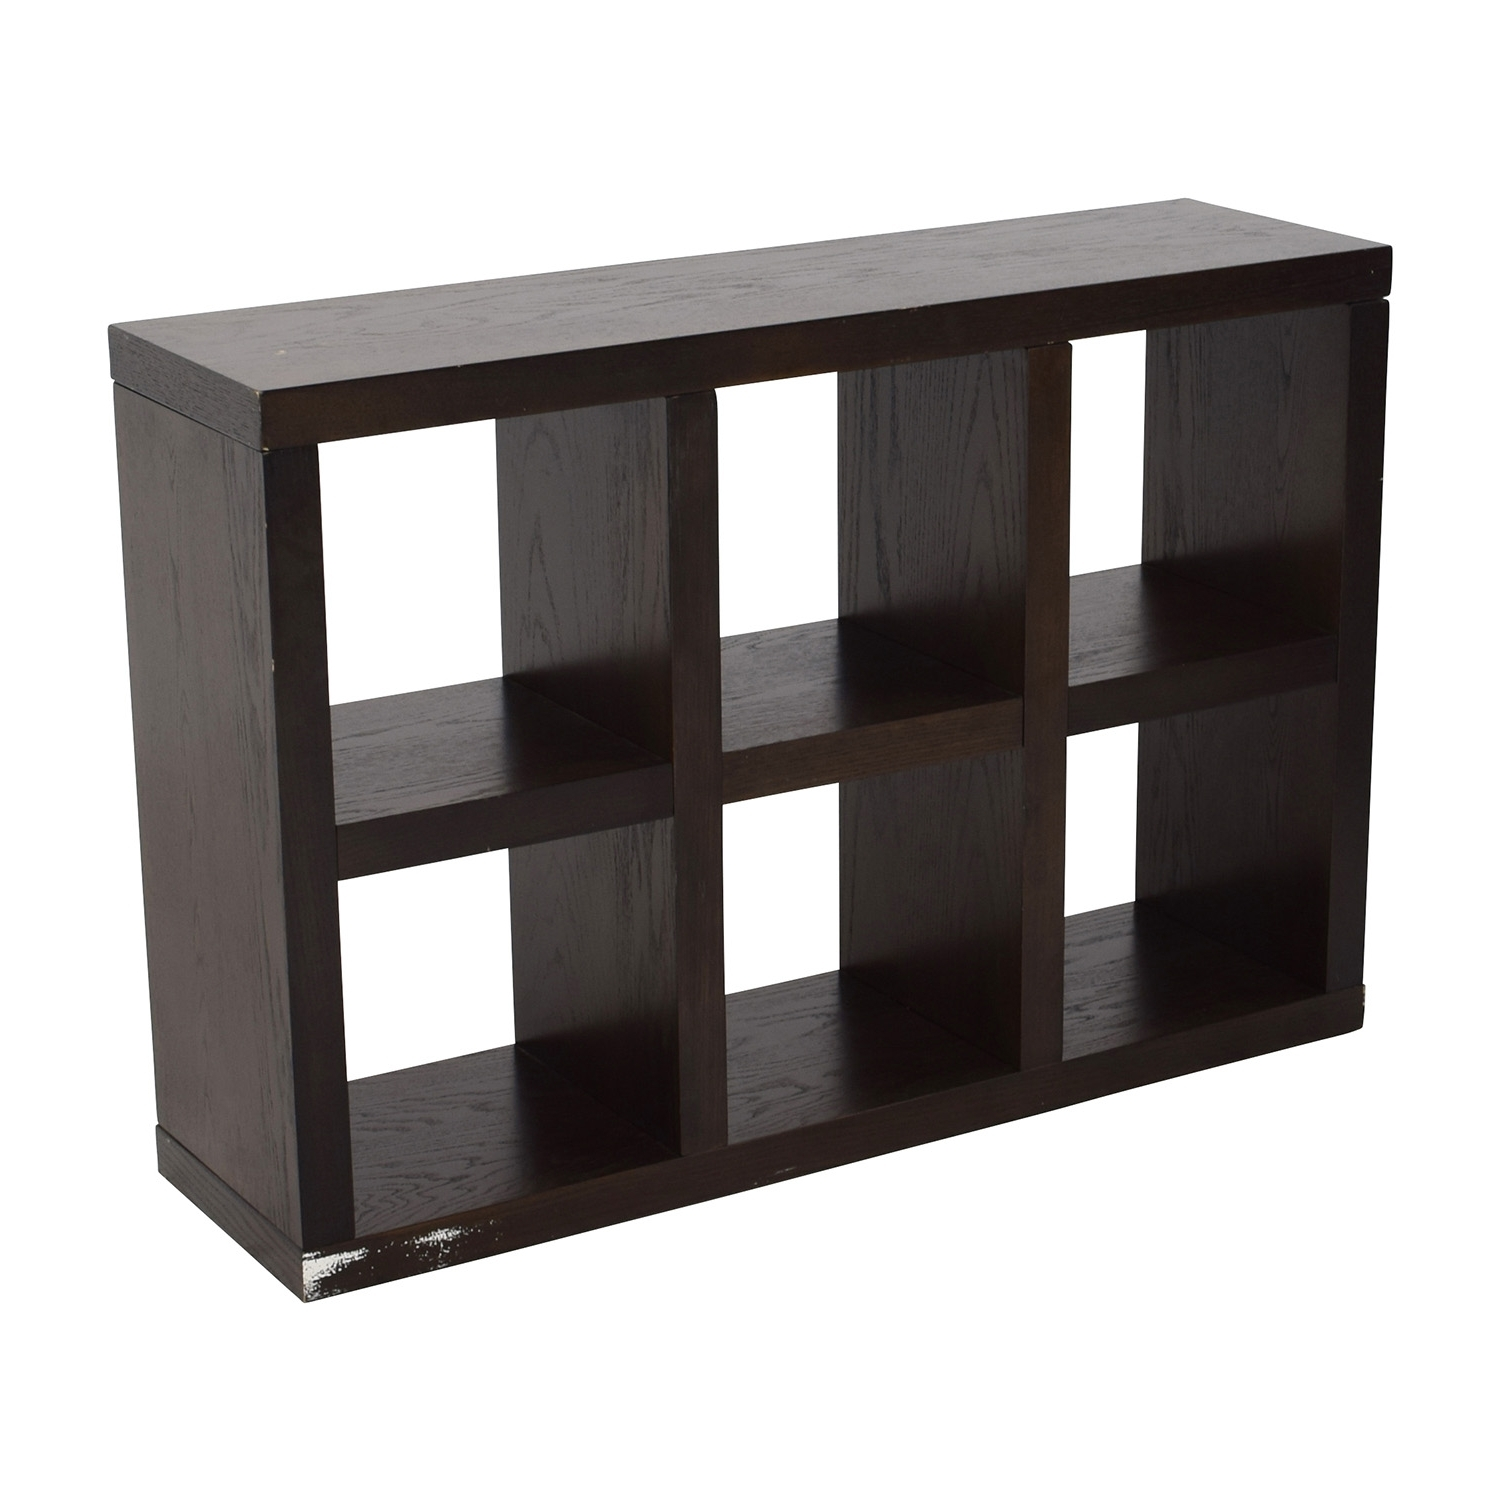 [%78% Off – West Elm West Elm Six Cubical Wooden Bookshelf / Storage With Regard To Well Known West Elm Bookcases|West Elm Bookcases Pertaining To Most Up To Date 78% Off – West Elm West Elm Six Cubical Wooden Bookshelf / Storage|Current West Elm Bookcases For 78% Off – West Elm West Elm Six Cubical Wooden Bookshelf / Storage|Fashionable 78% Off – West Elm West Elm Six Cubical Wooden Bookshelf / Storage Throughout West Elm Bookcases%] (View 3 of 15)